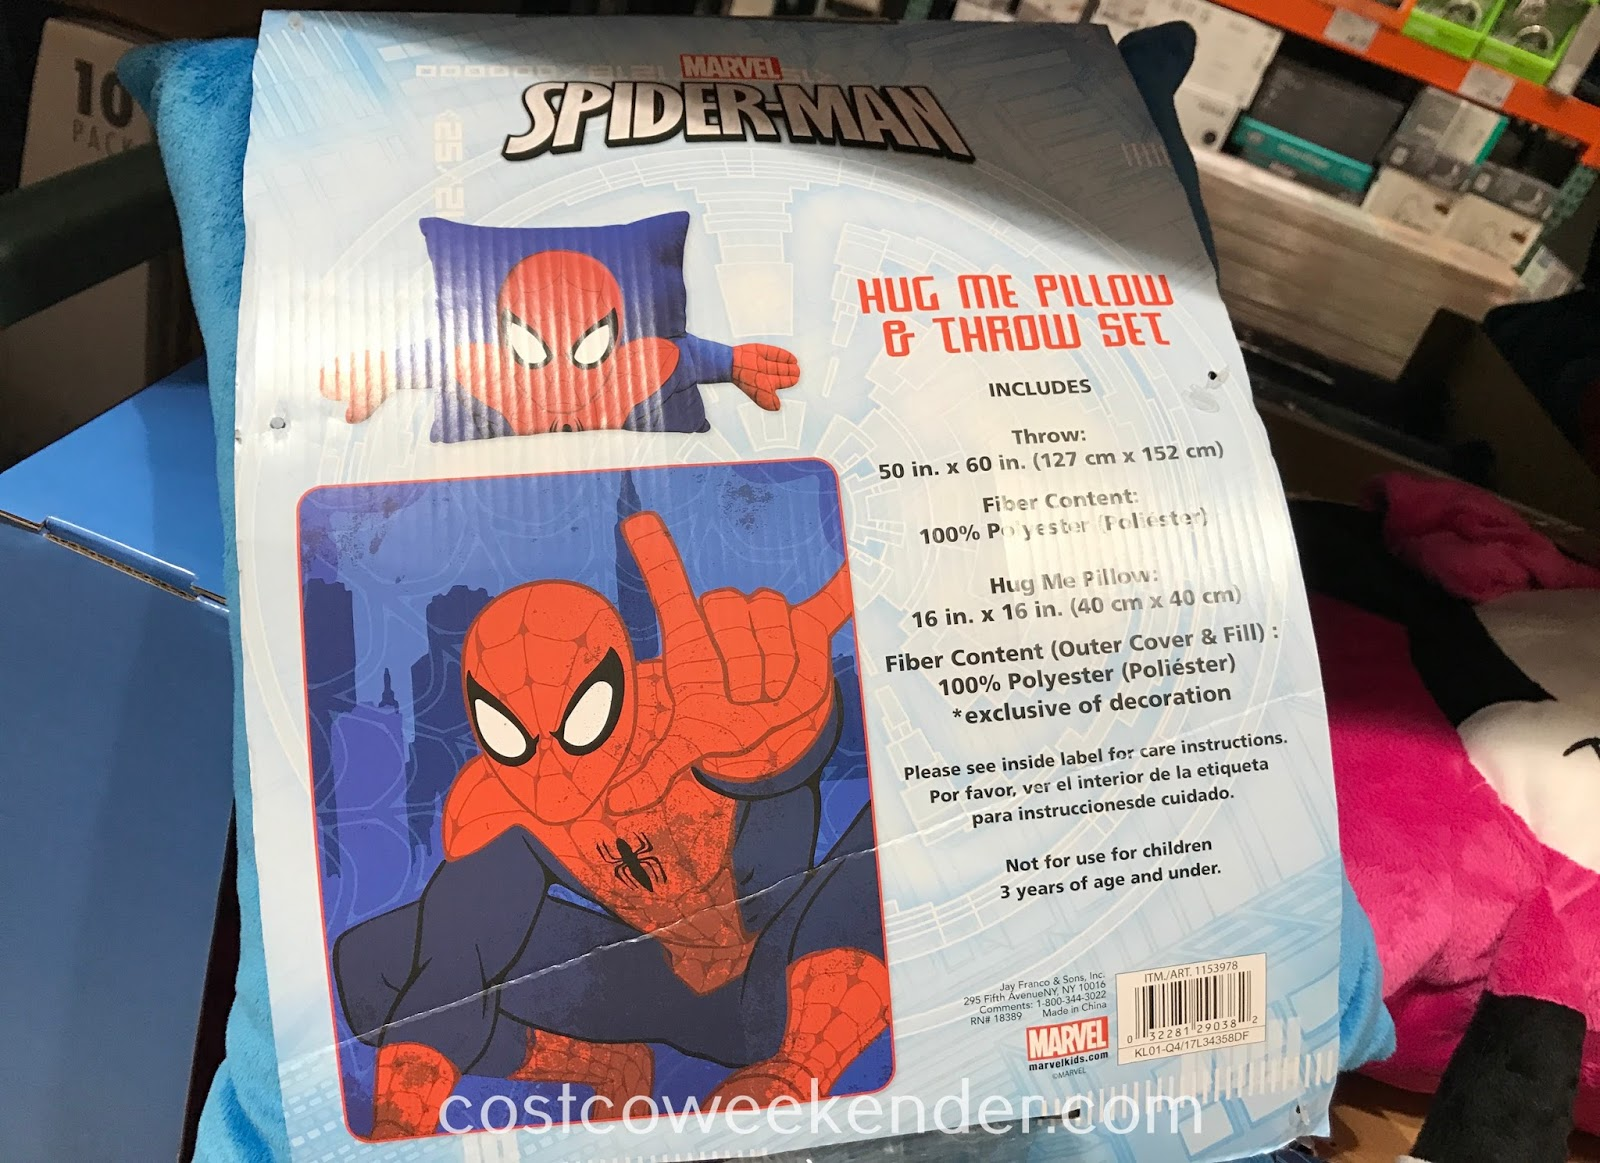 Costco 1153978 - Jay Franco and Sons Hug Me Pillow and Throw Set with Mickey, Minnie, Spiderman, and even Paw Patrol